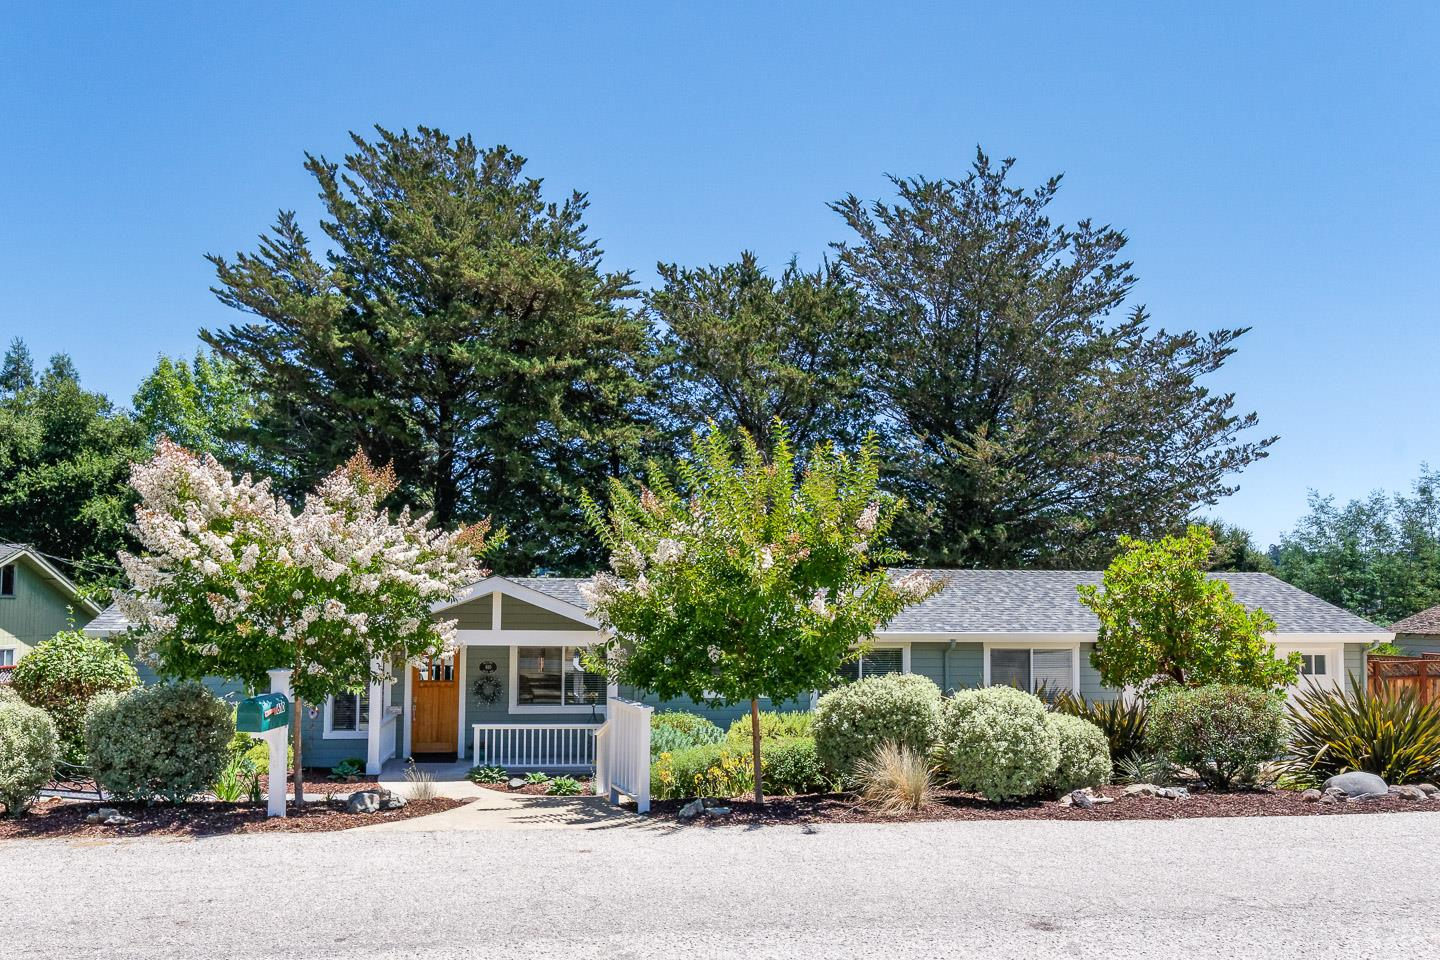 Don't miss out on this ONE-LEVEL turnkey home ideally situated on a quiet dead-end street on the North end of Scotts Valley! Ideal location for commuters or for anyone seeking a tranquil setting in a pristine community. Imagine the convenience of being walking distance to all conveniences, including the top-rated Scotts Valley schools. This beautiful home has ample storage inside and out and was completely remodeled in 2015 with stylish updated finishes throughout. Since that time, the current homeowners have added many improvements. The spacious and private back yard was beautifully landscaped in 2017. Imagine enjoying the sound of your own private waterfall while relaxing on the new redwood deck or while getting cozy by the outdoor fire pit. You will not have to spend your weekend time mowing the lawn, thanks to the new artificial turf.  This single story home is a true gem inside and out. See it before it's gone!